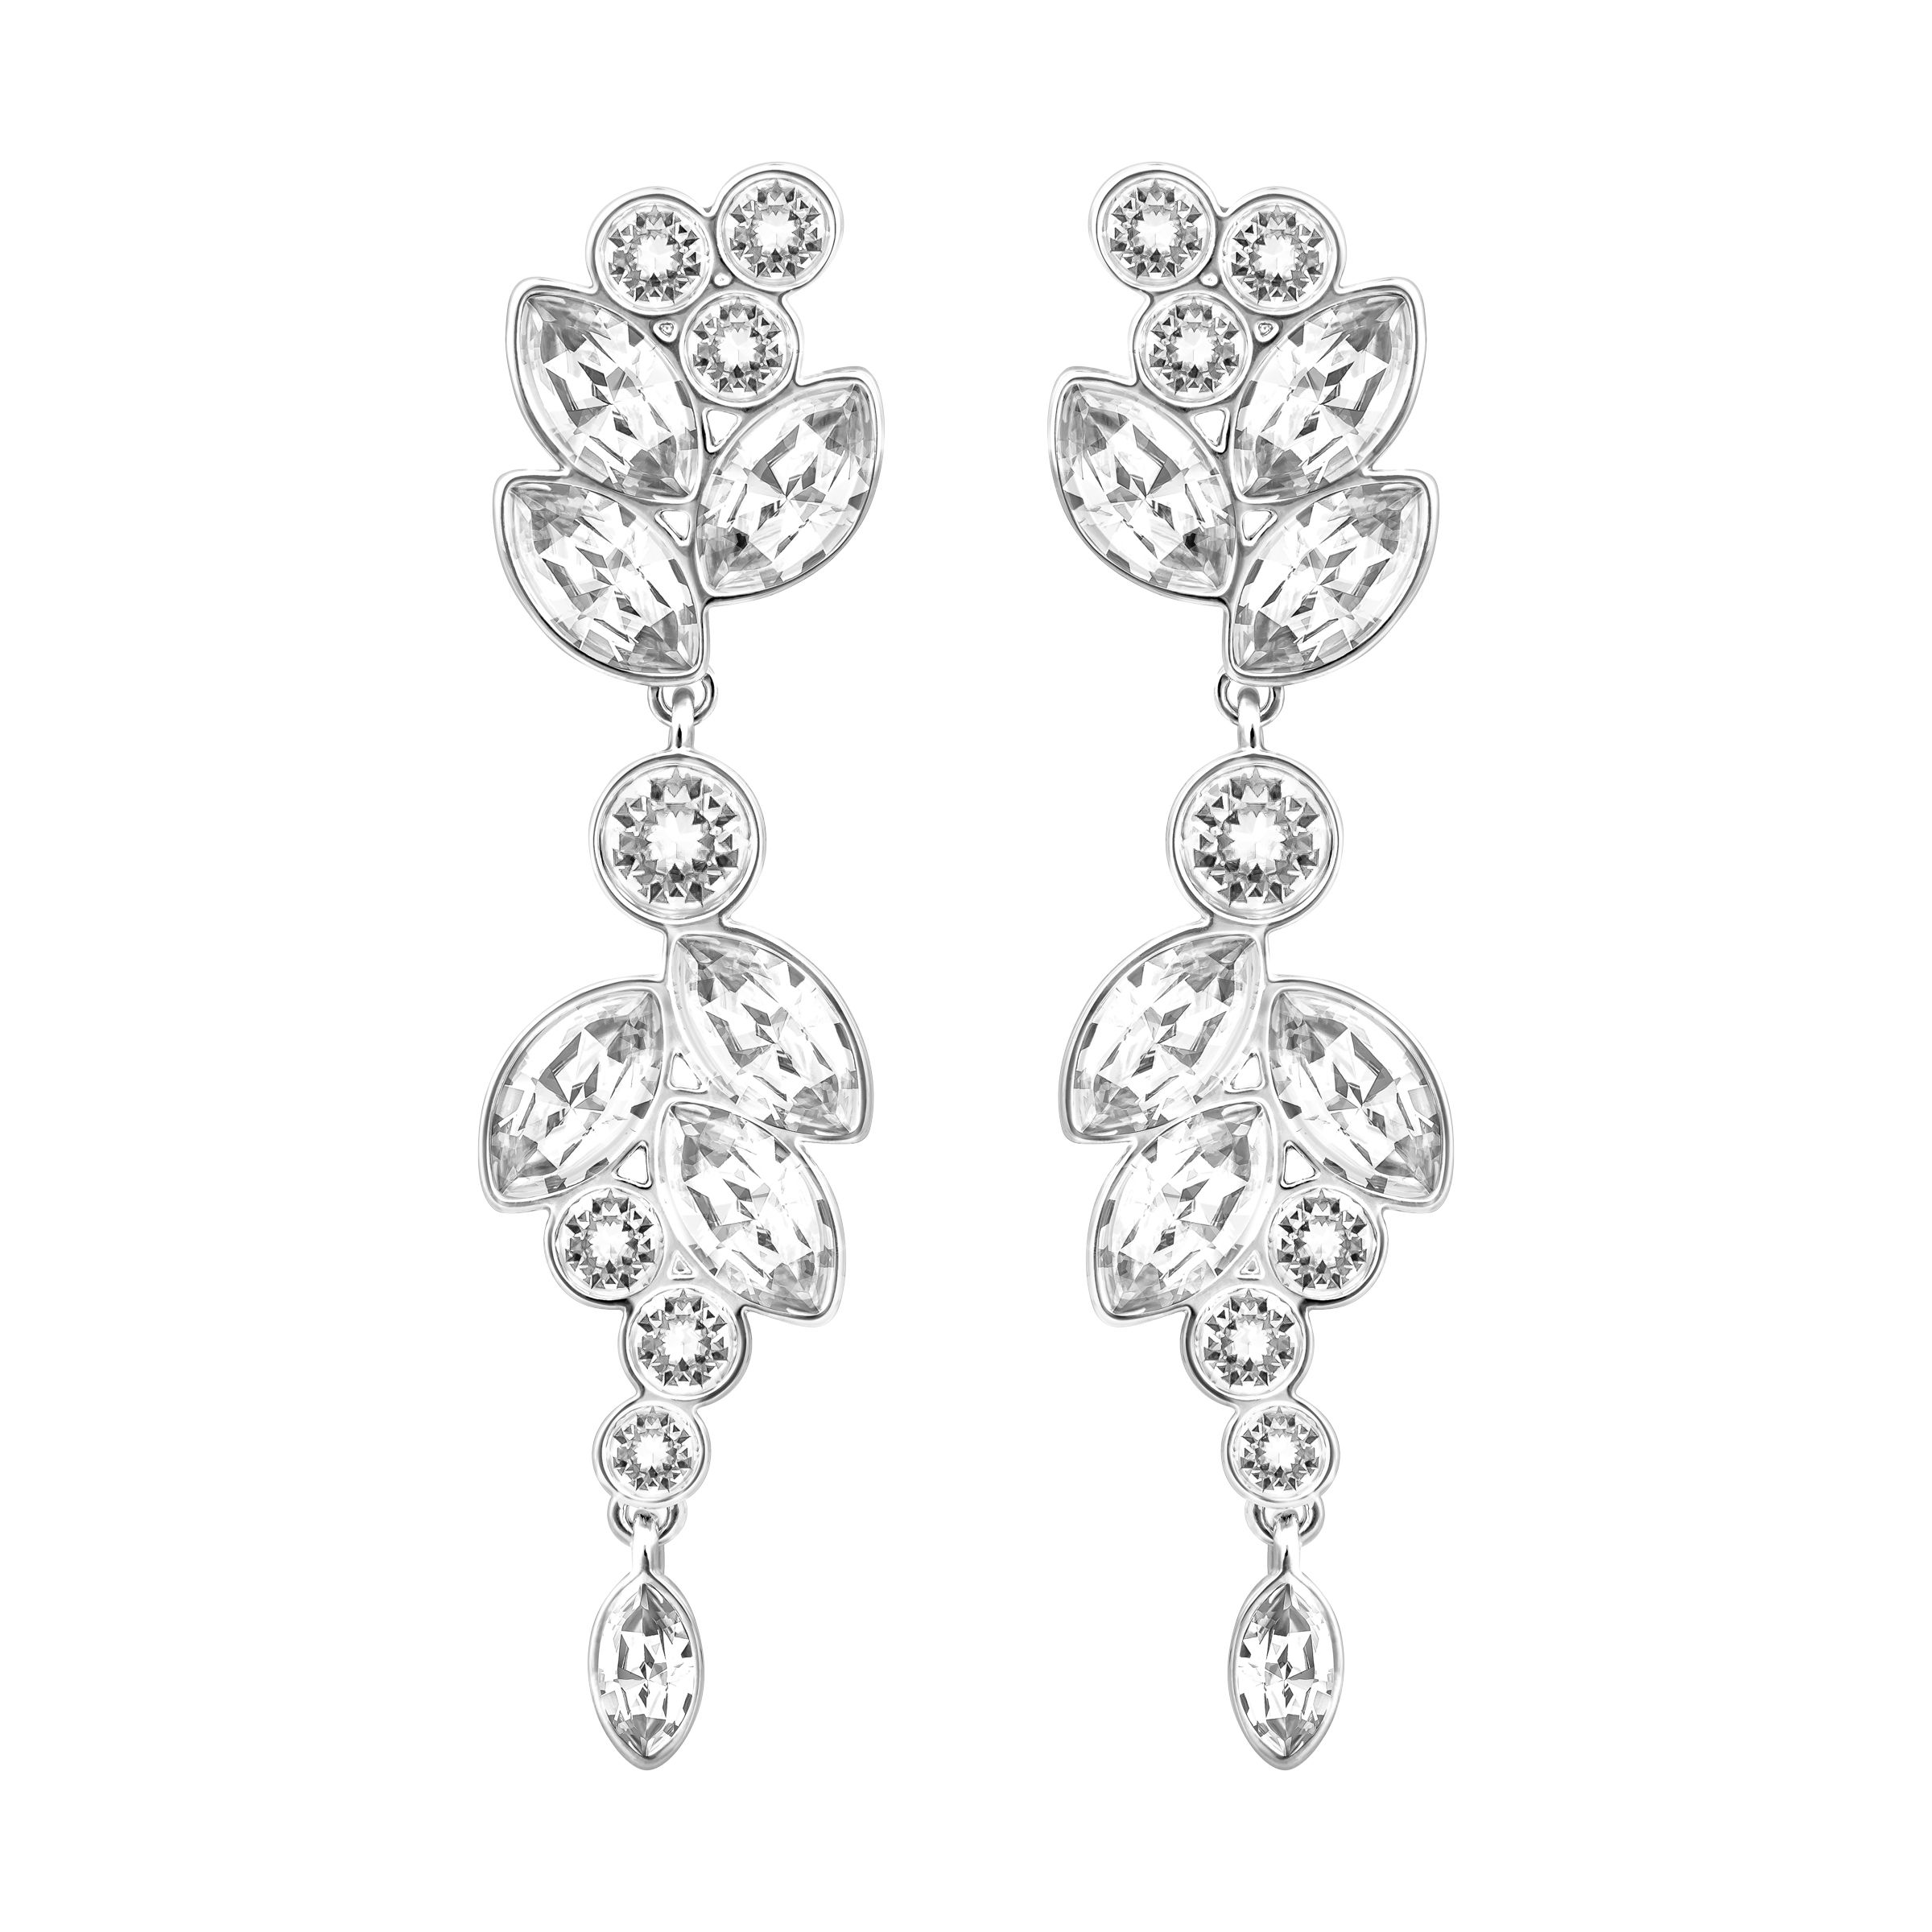 Swarovski Diapason Pierced Earrings, Silver